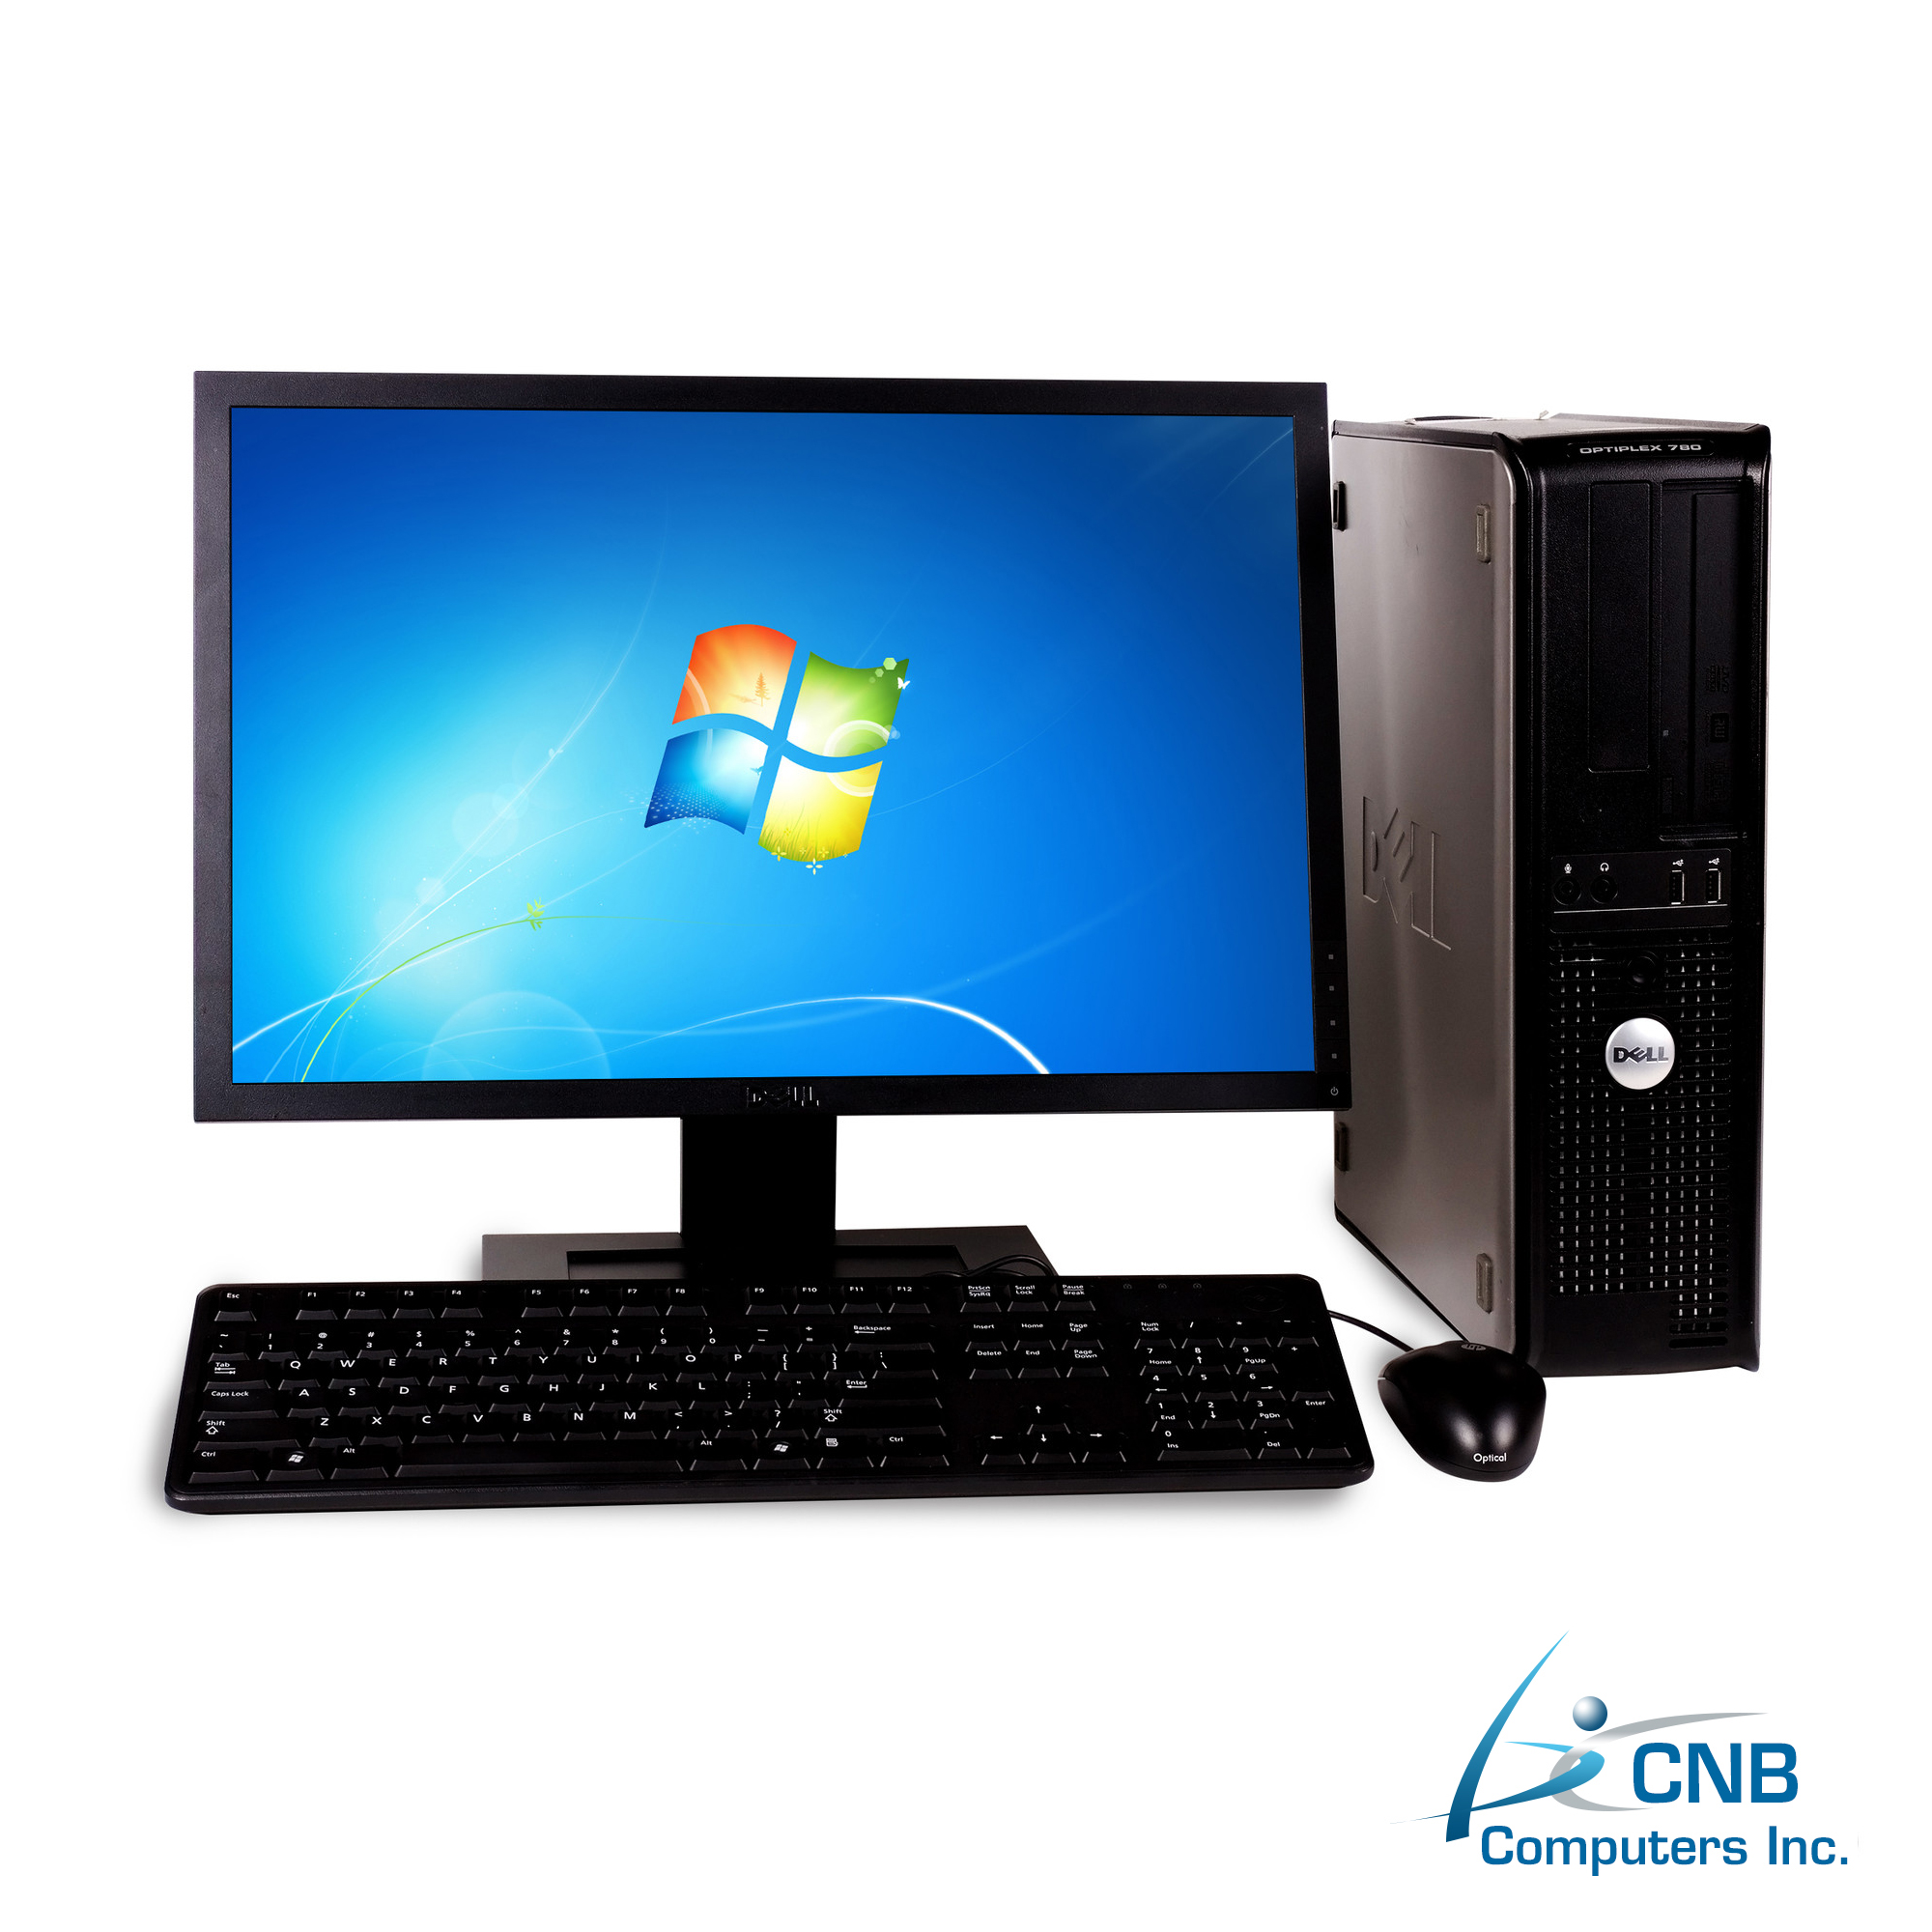 dell gx760 combo 2gb 160gb hdd intel core 2 duo 2 4ghz dell 20 lcd cnb. Black Bedroom Furniture Sets. Home Design Ideas